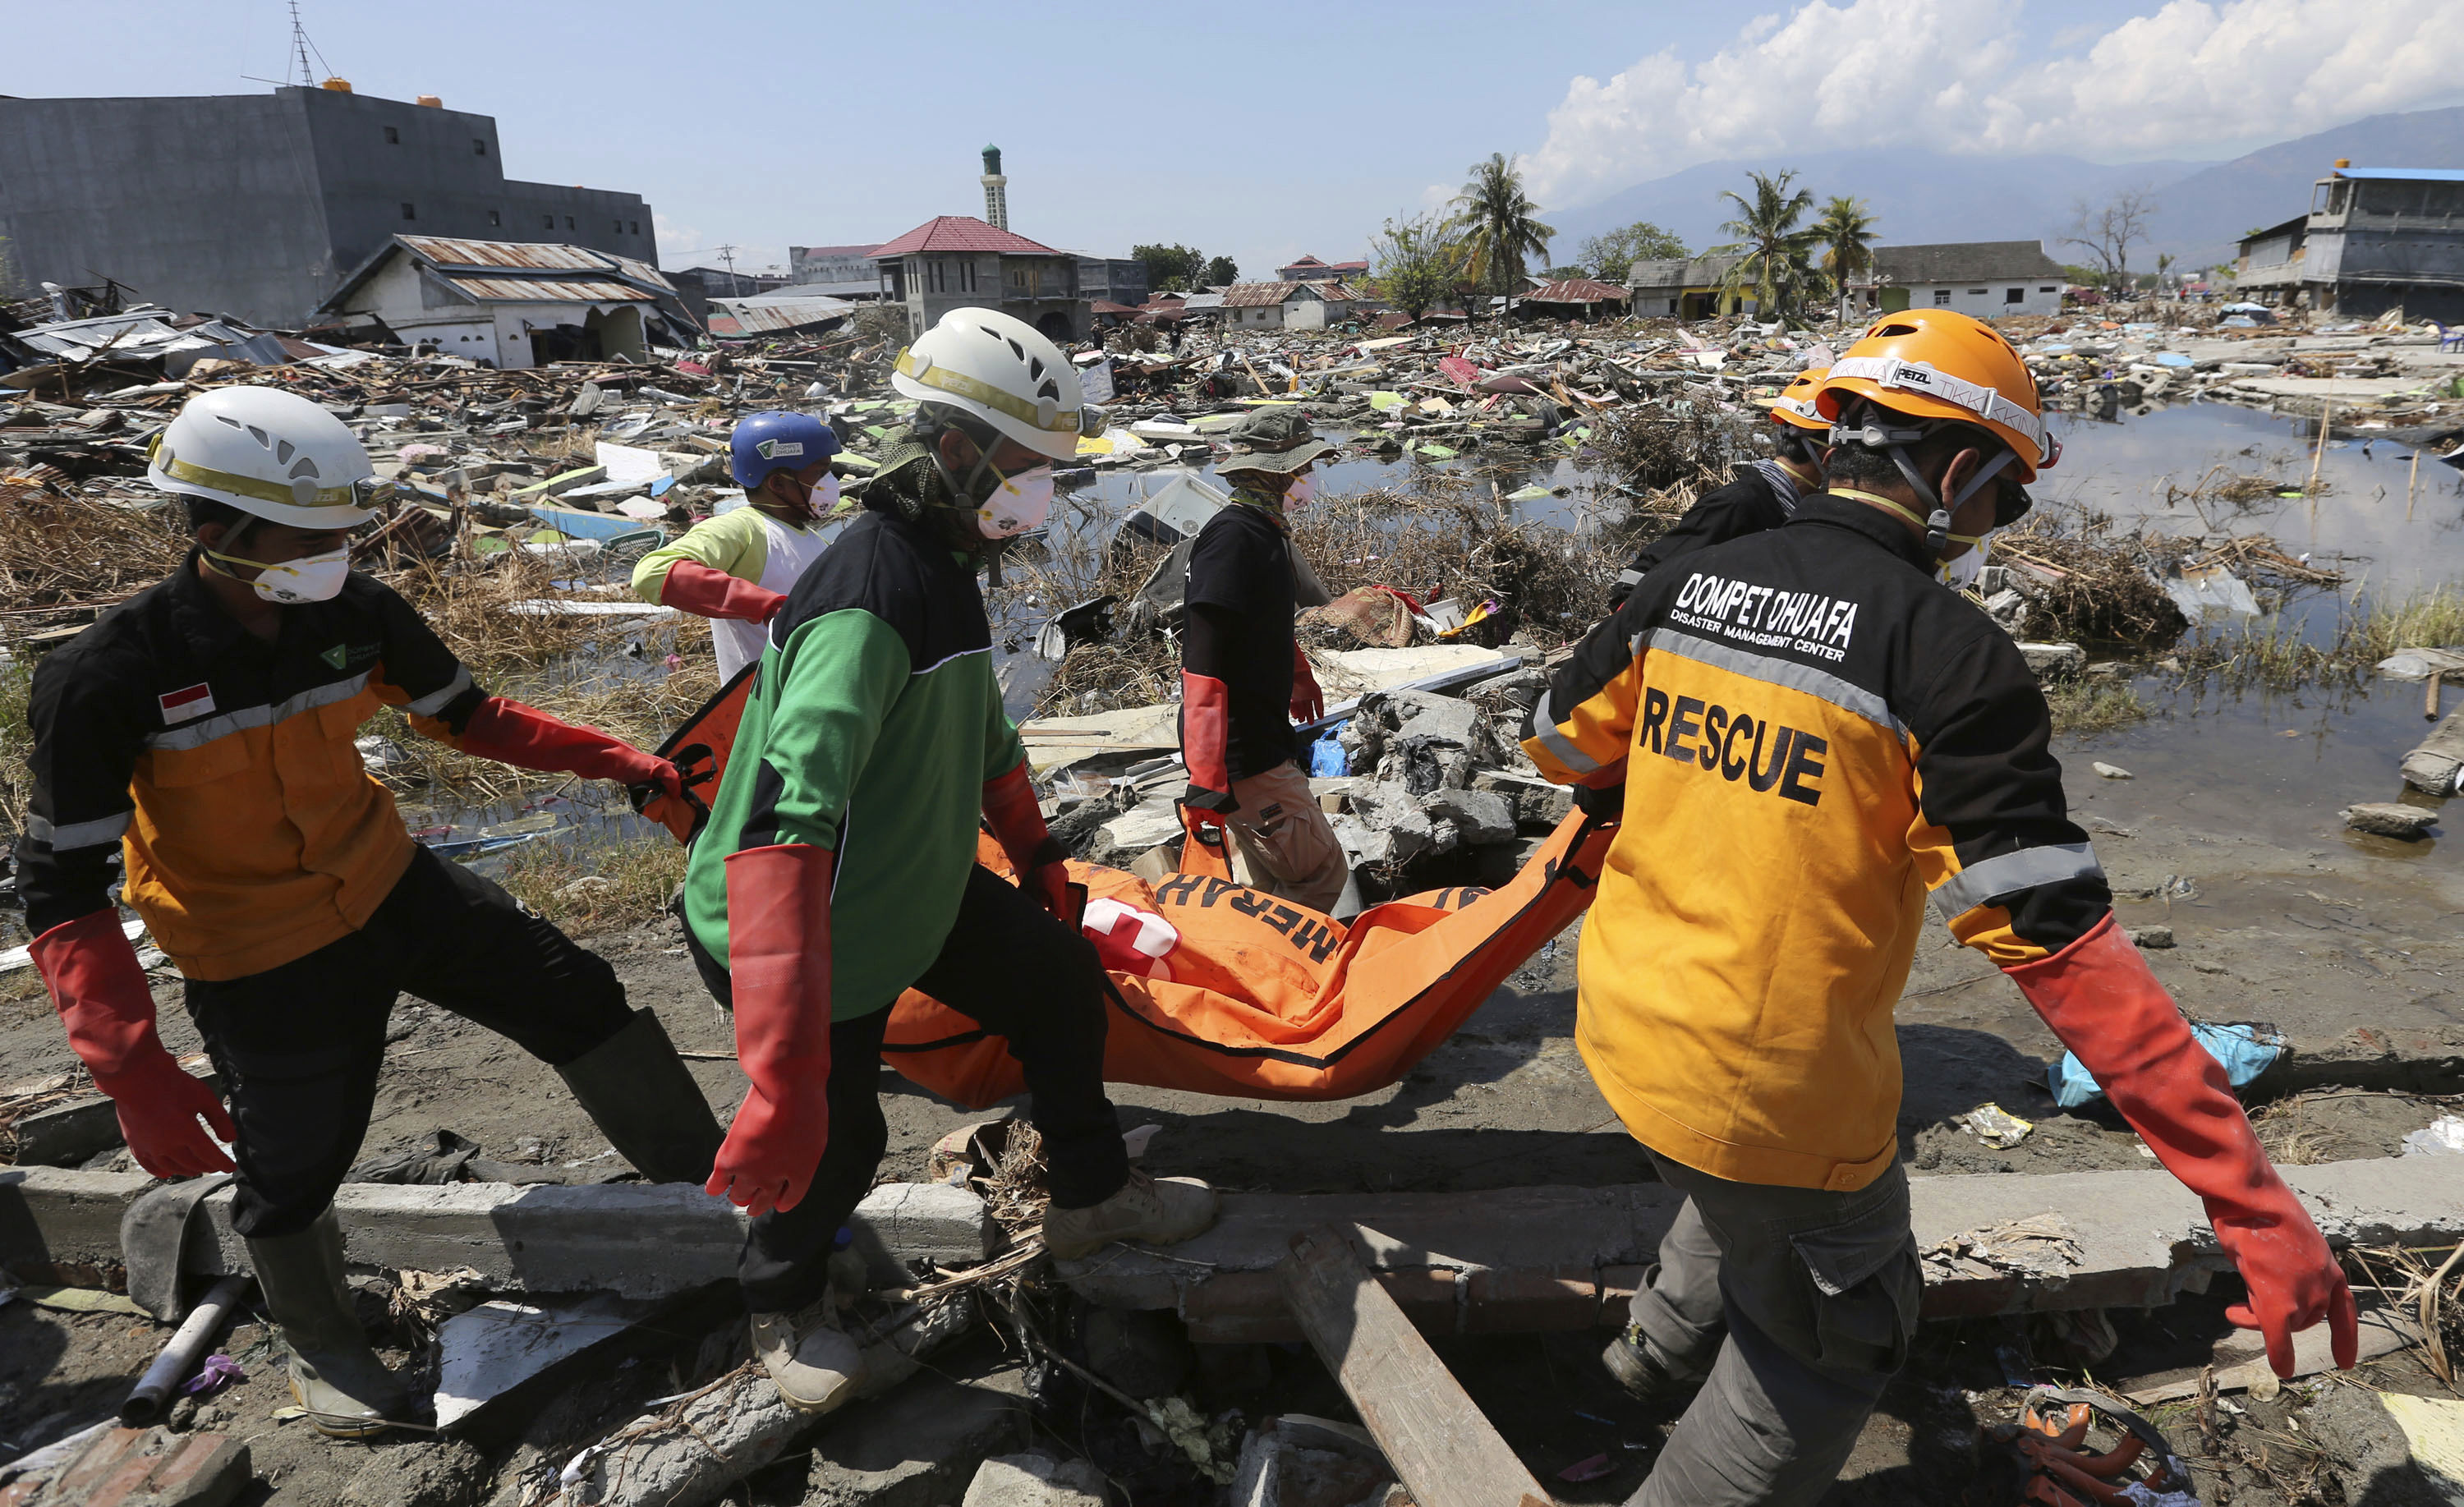 An Indonesian rescue team carries the body of a victim following an earthquake and tsunami in Palu, Central Sulawesi, Indonesia, earlier this month.